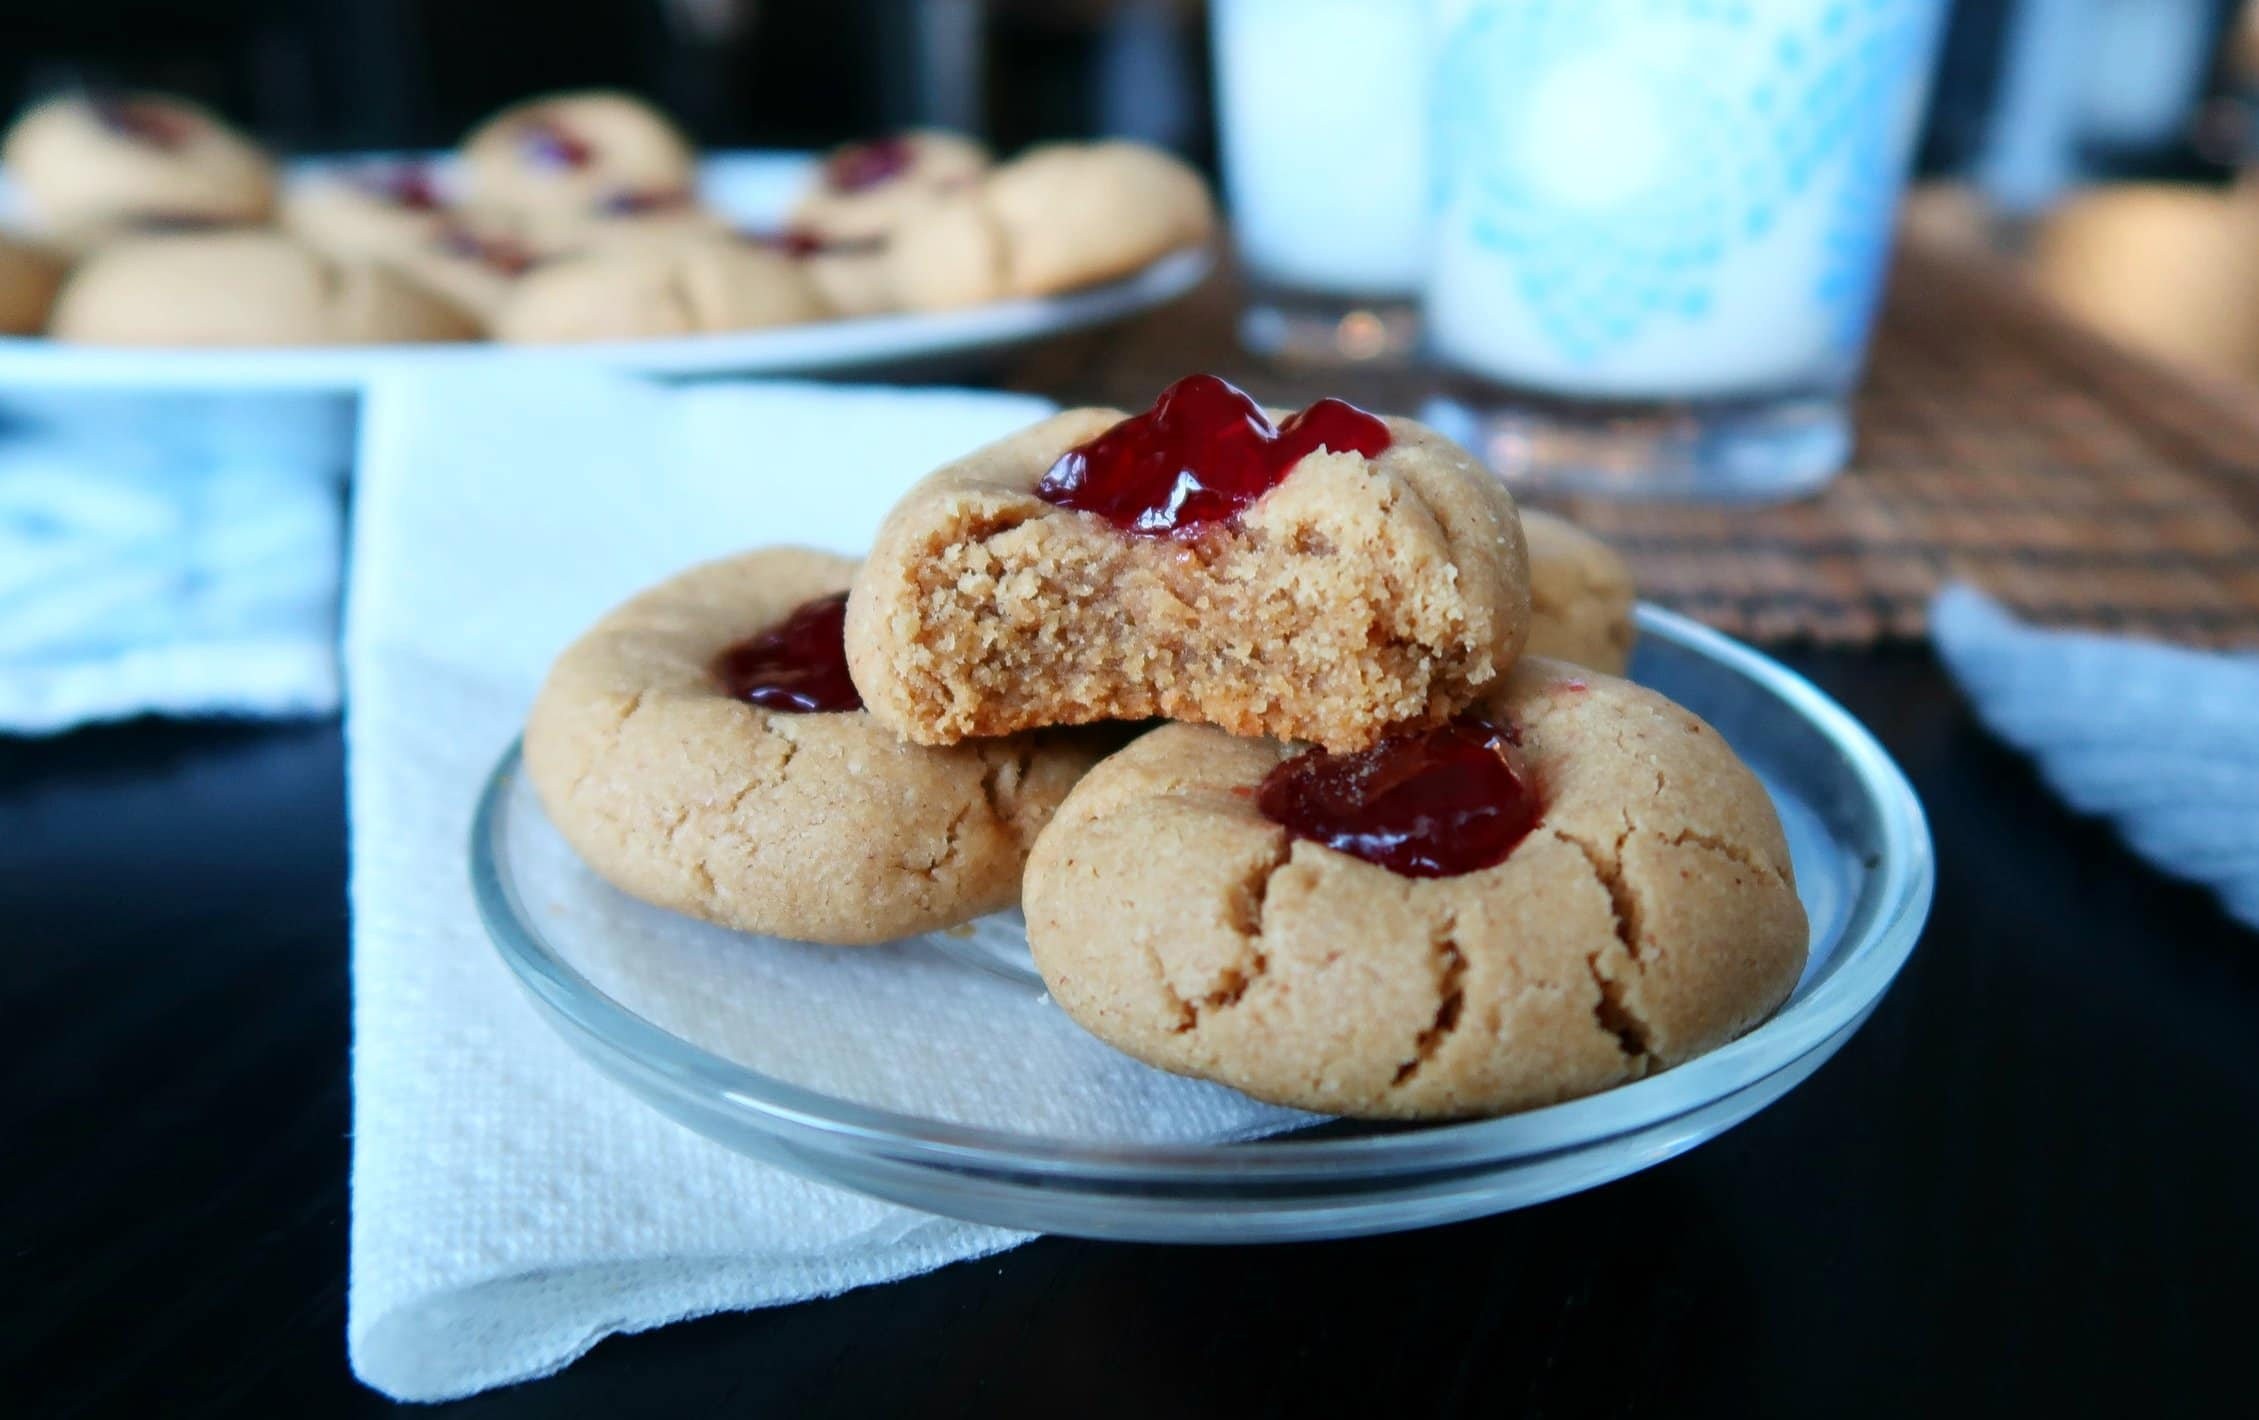 A Peanut Butter and Jelly Thumbprint Cookie with a bite missing.